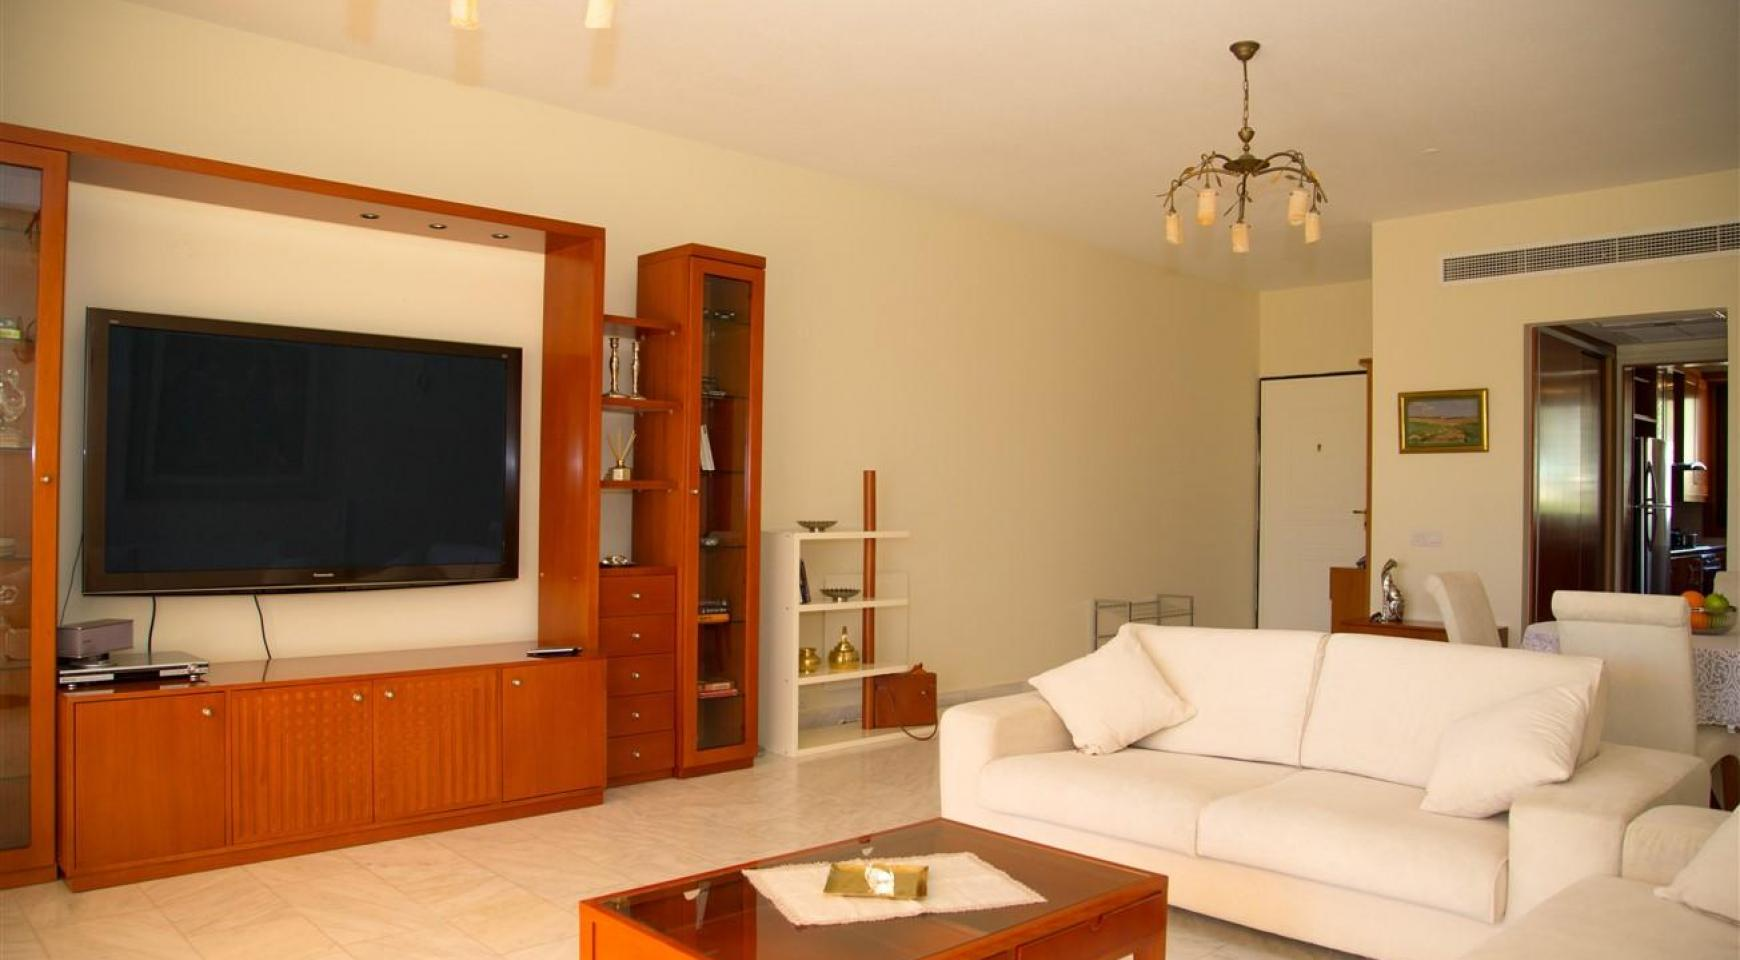 3 Bedroom Apartment in Thera Complex by the Sea - 20